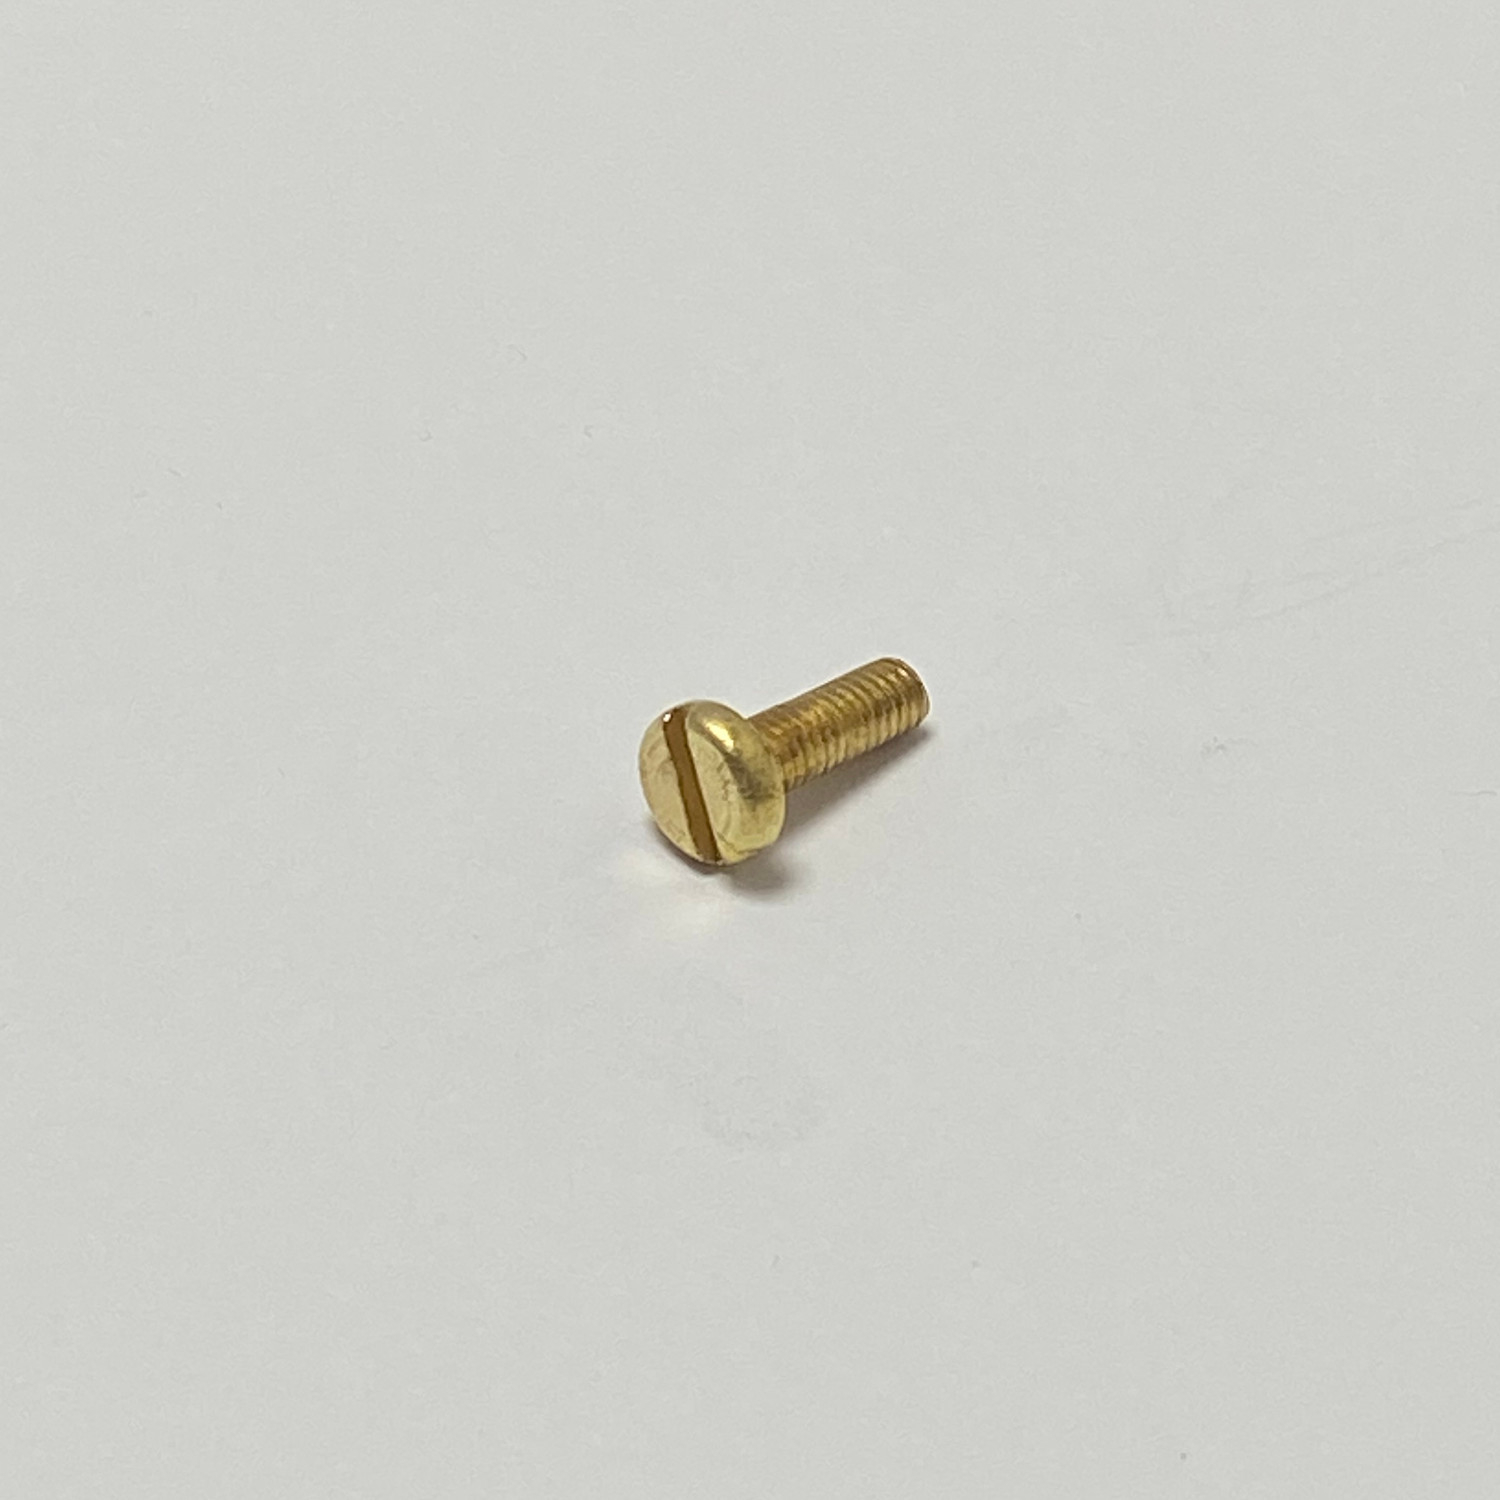 M8 X 12 BRASS SLOTTED CHEESE SCREWS